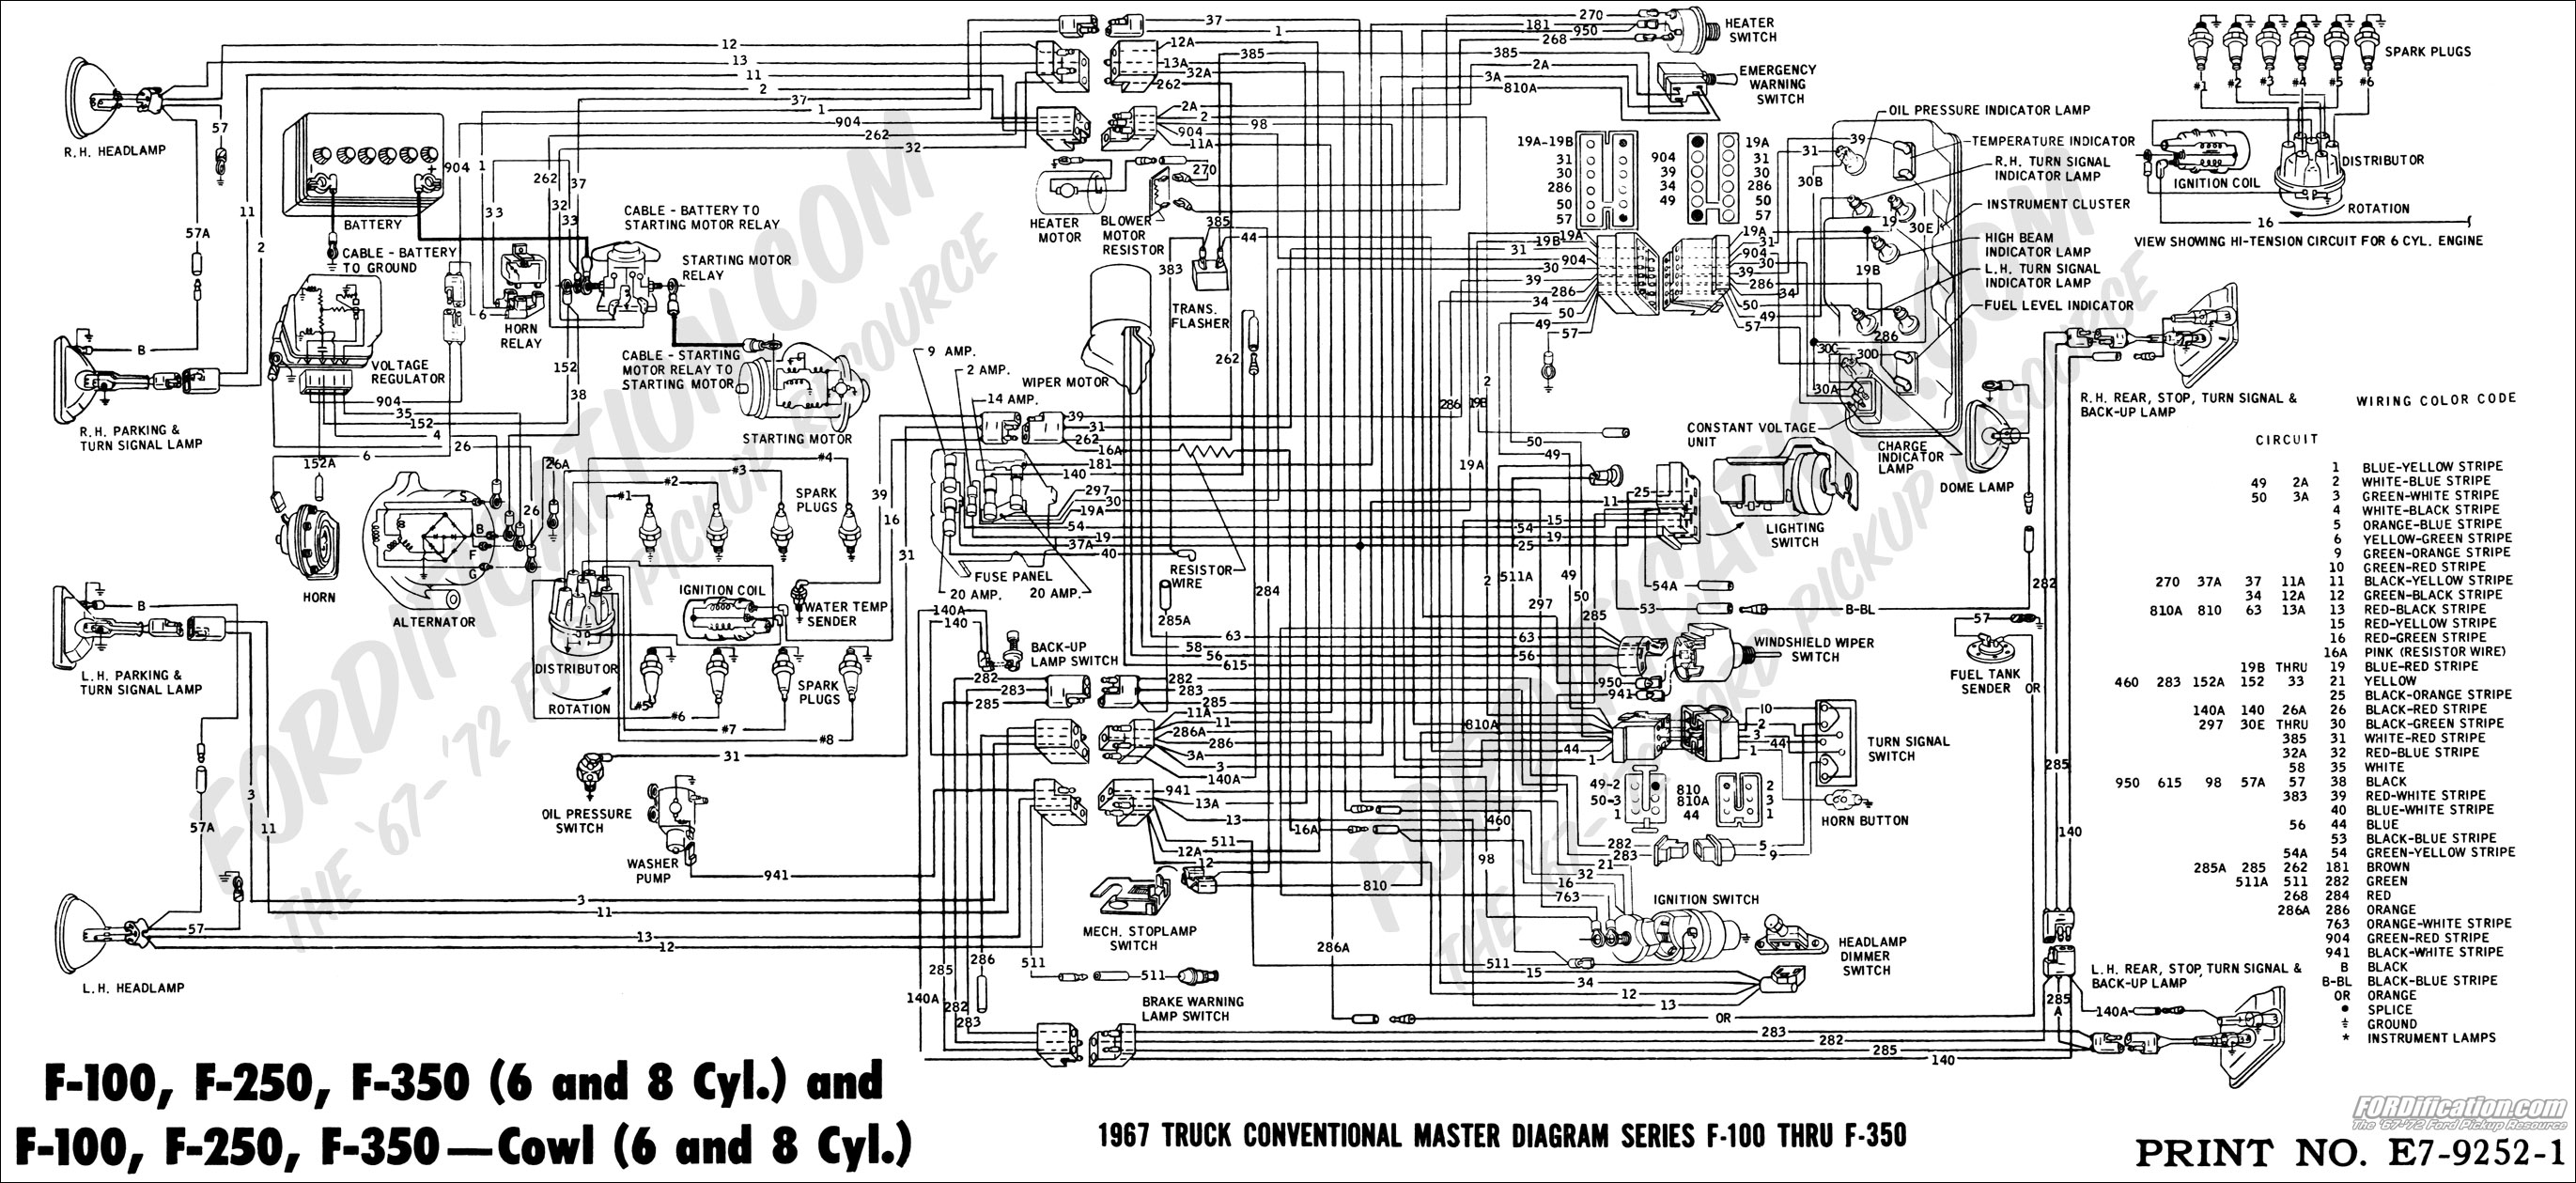 67masterdiagram ford truck technical drawings and schematics section h wiring 1999 ford ranger ignition wiring diagram at crackthecode.co